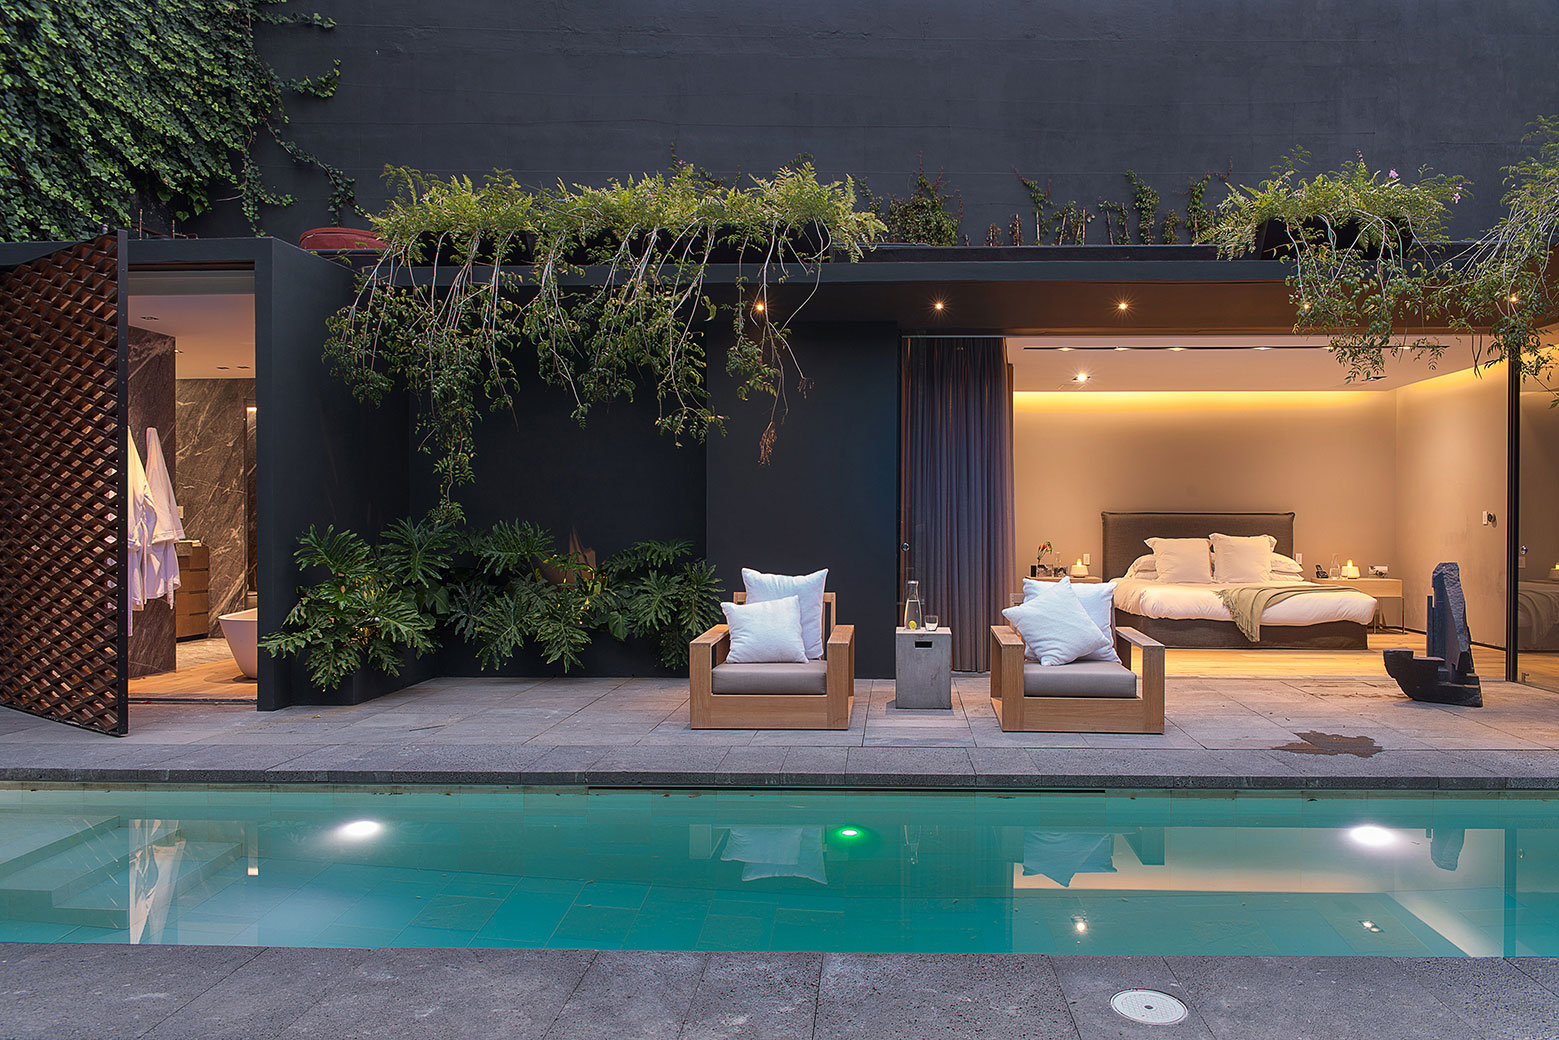 Modern Barrancas House in Mexico City by EZEQUIELFARCA architecture and design-20